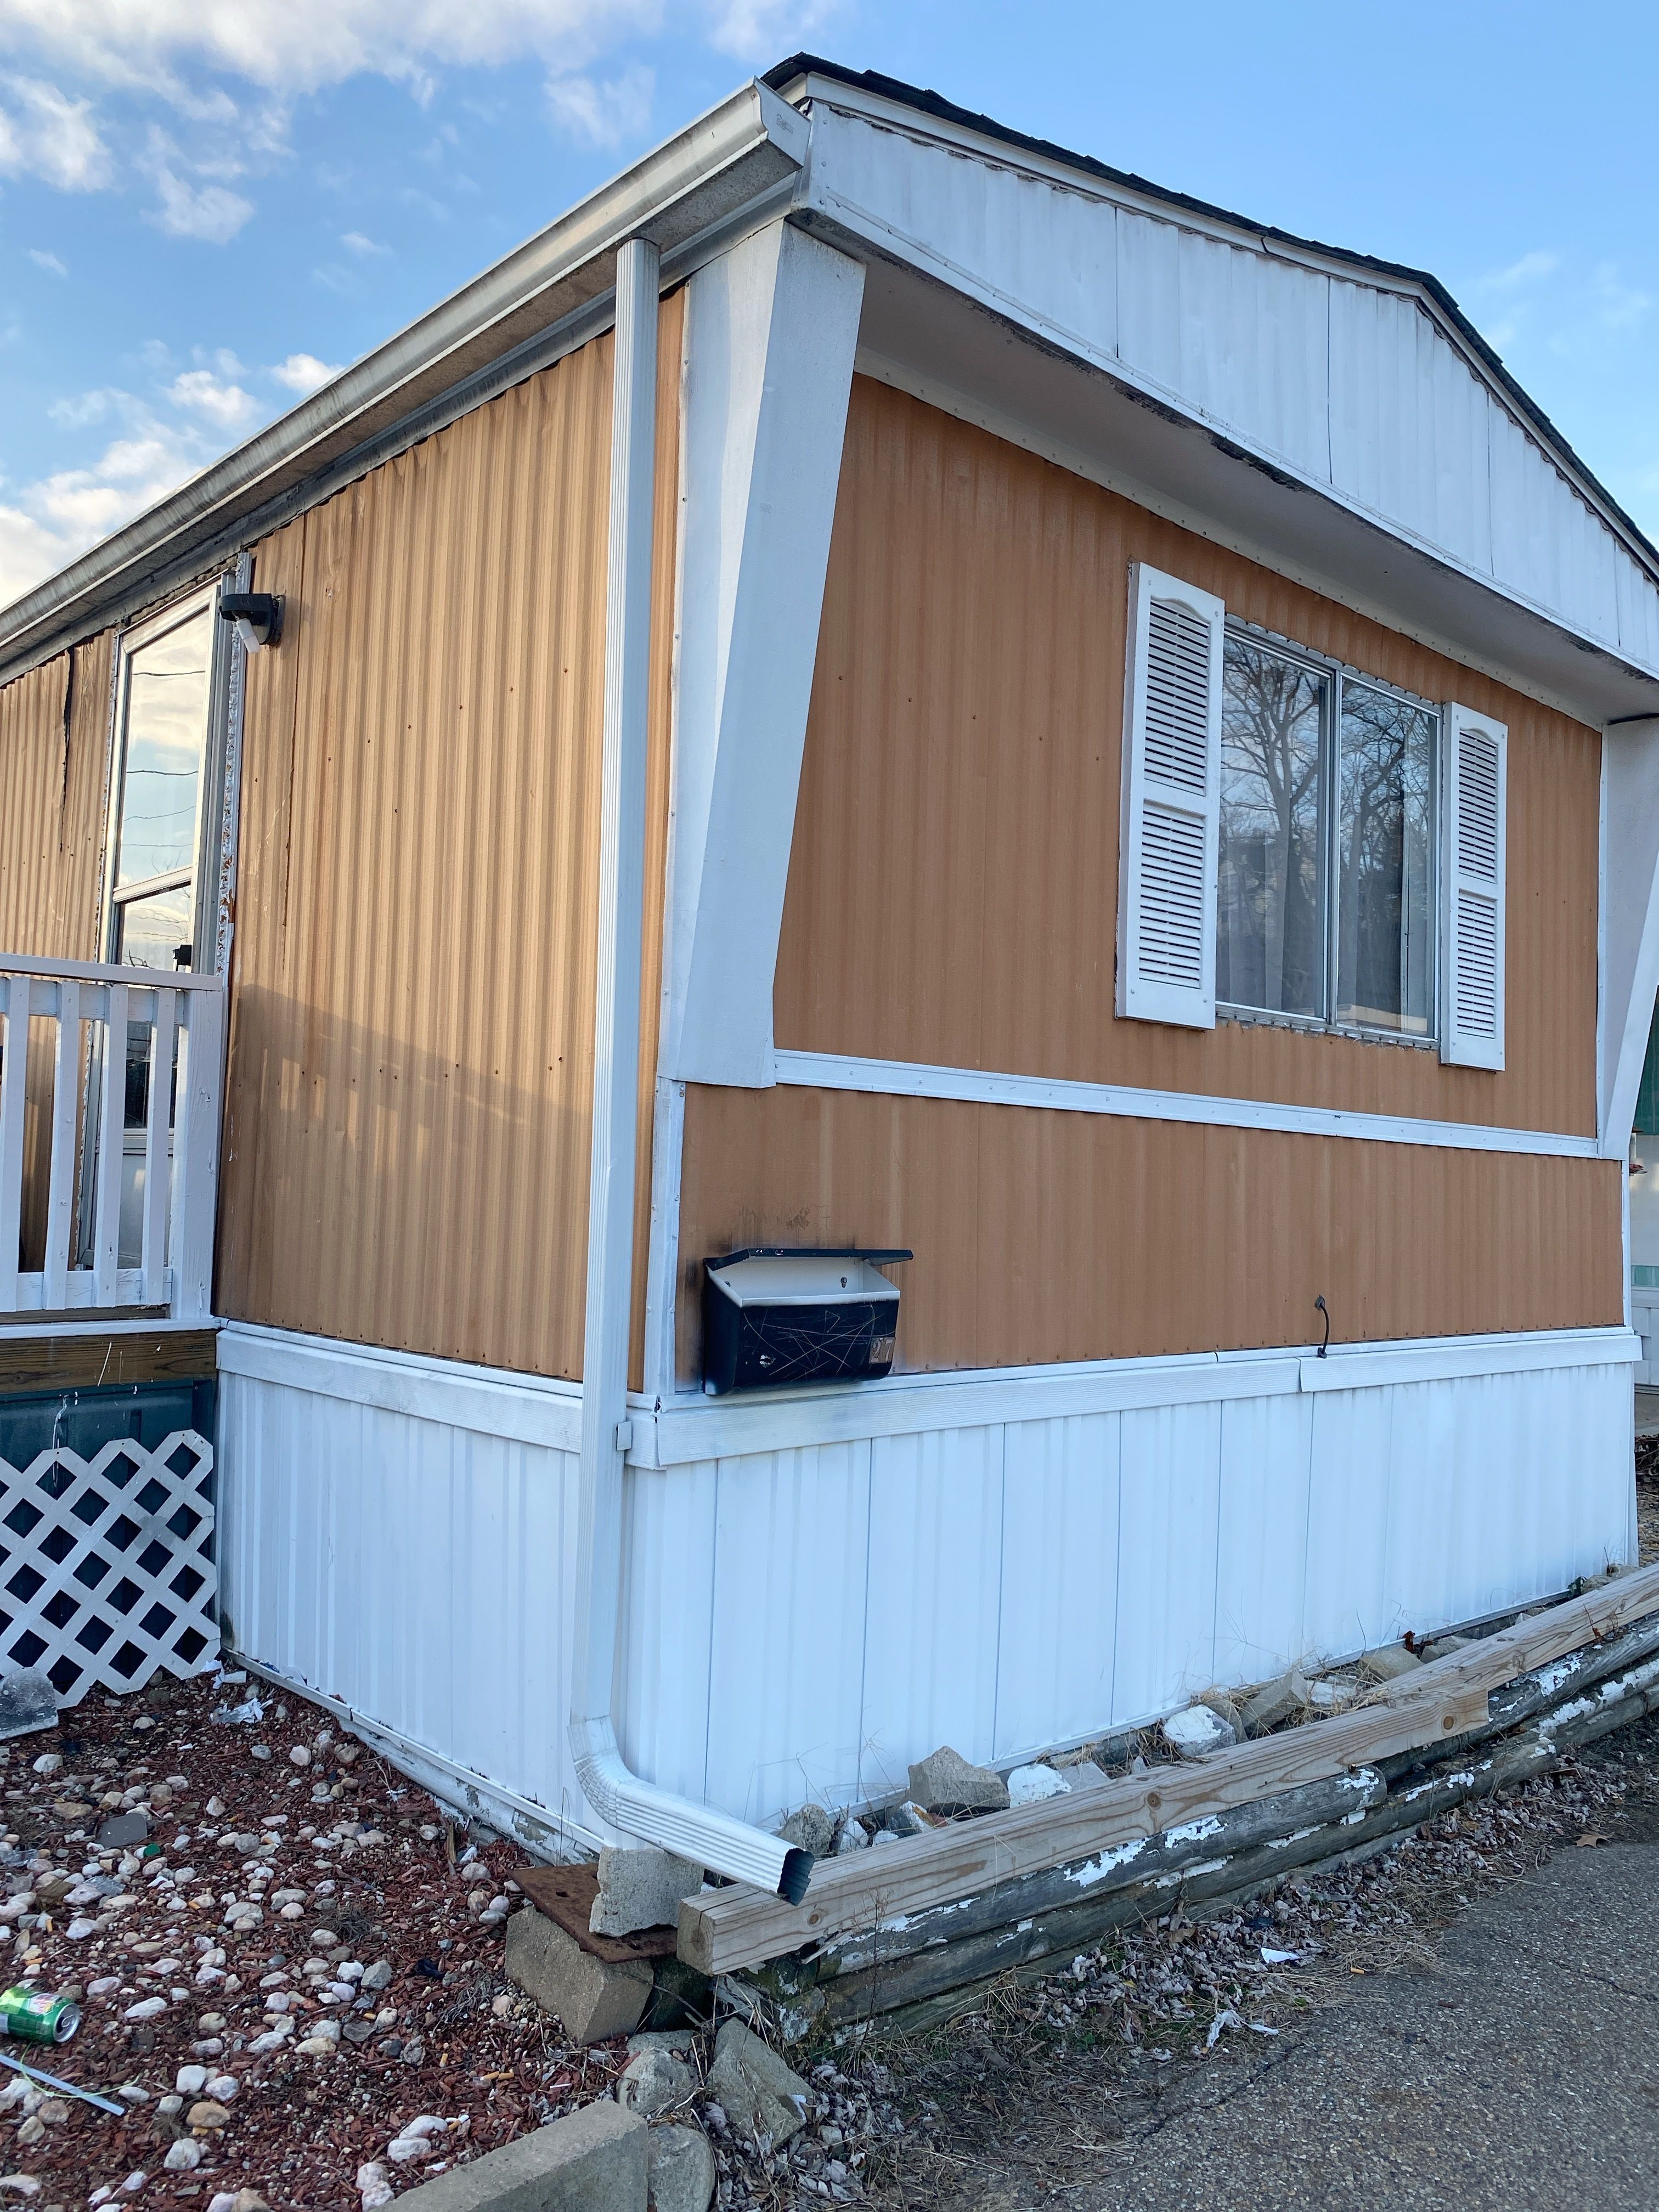 Cheswick Trailer For Sale 2 Bedroom 1 Bathroom 8500 00 Priced To Sell Fast In 2020 Mobile Homes For Sale Outdoor Decor Trailers For Sale